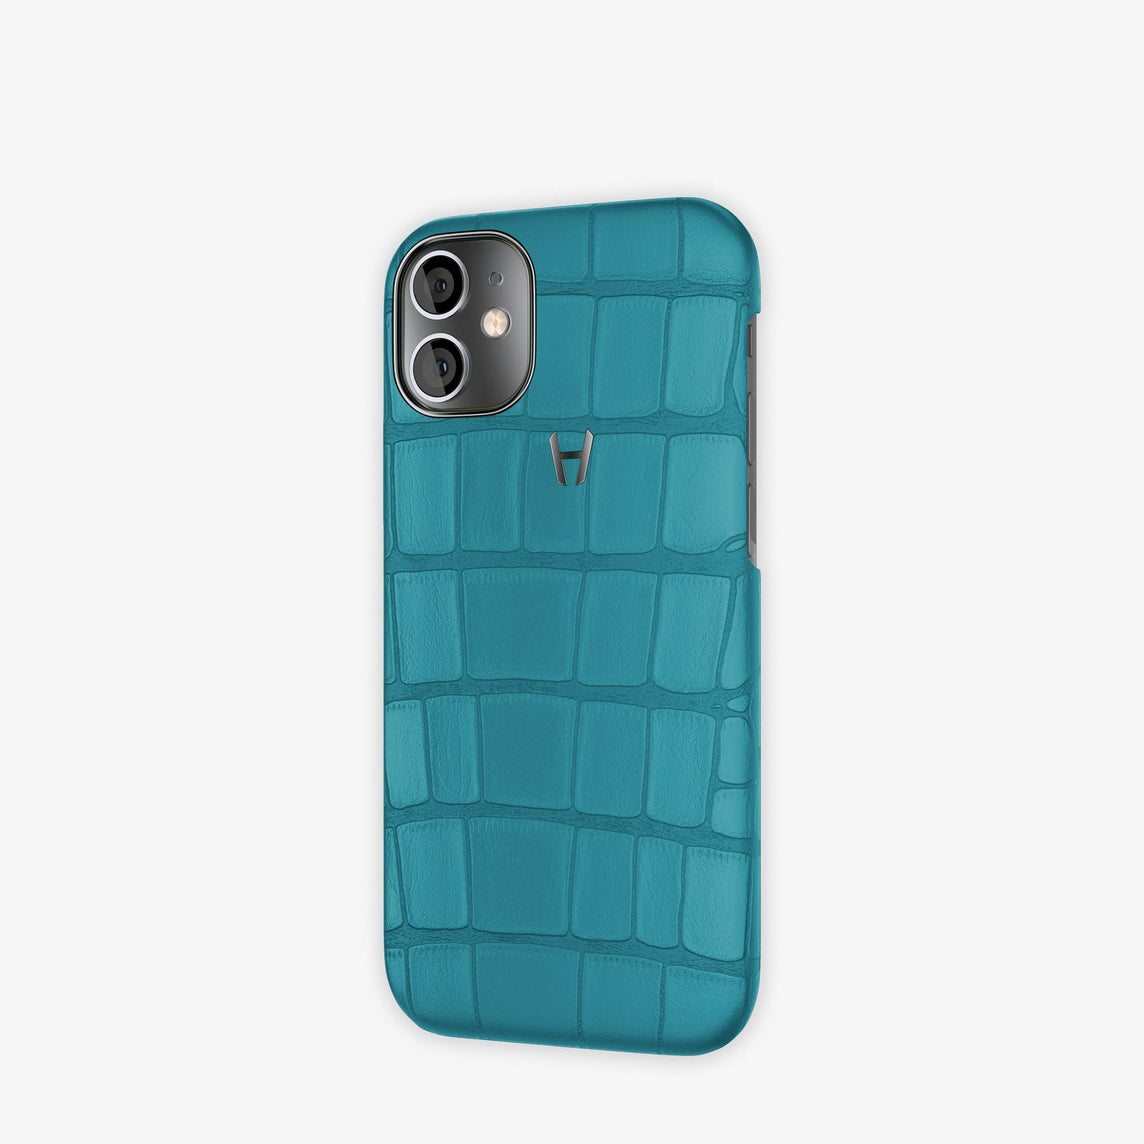 Alligator Case Apple iPhone 12 Mini | Teal - Black